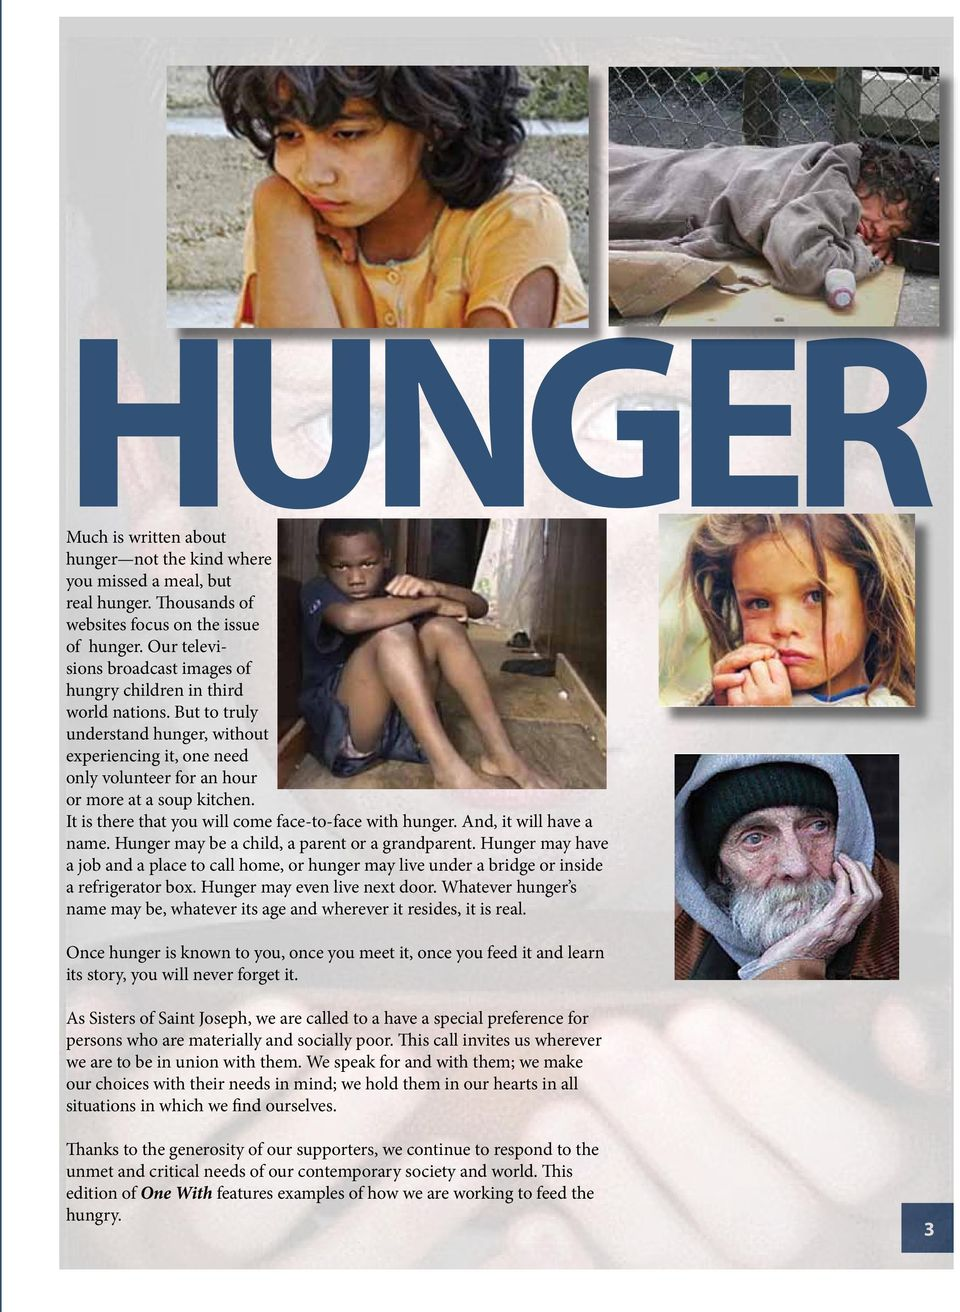 It is there that you will come face-to-face with hunger. And, it will have a name. Hunger may be a child, a parent or a grandparent.